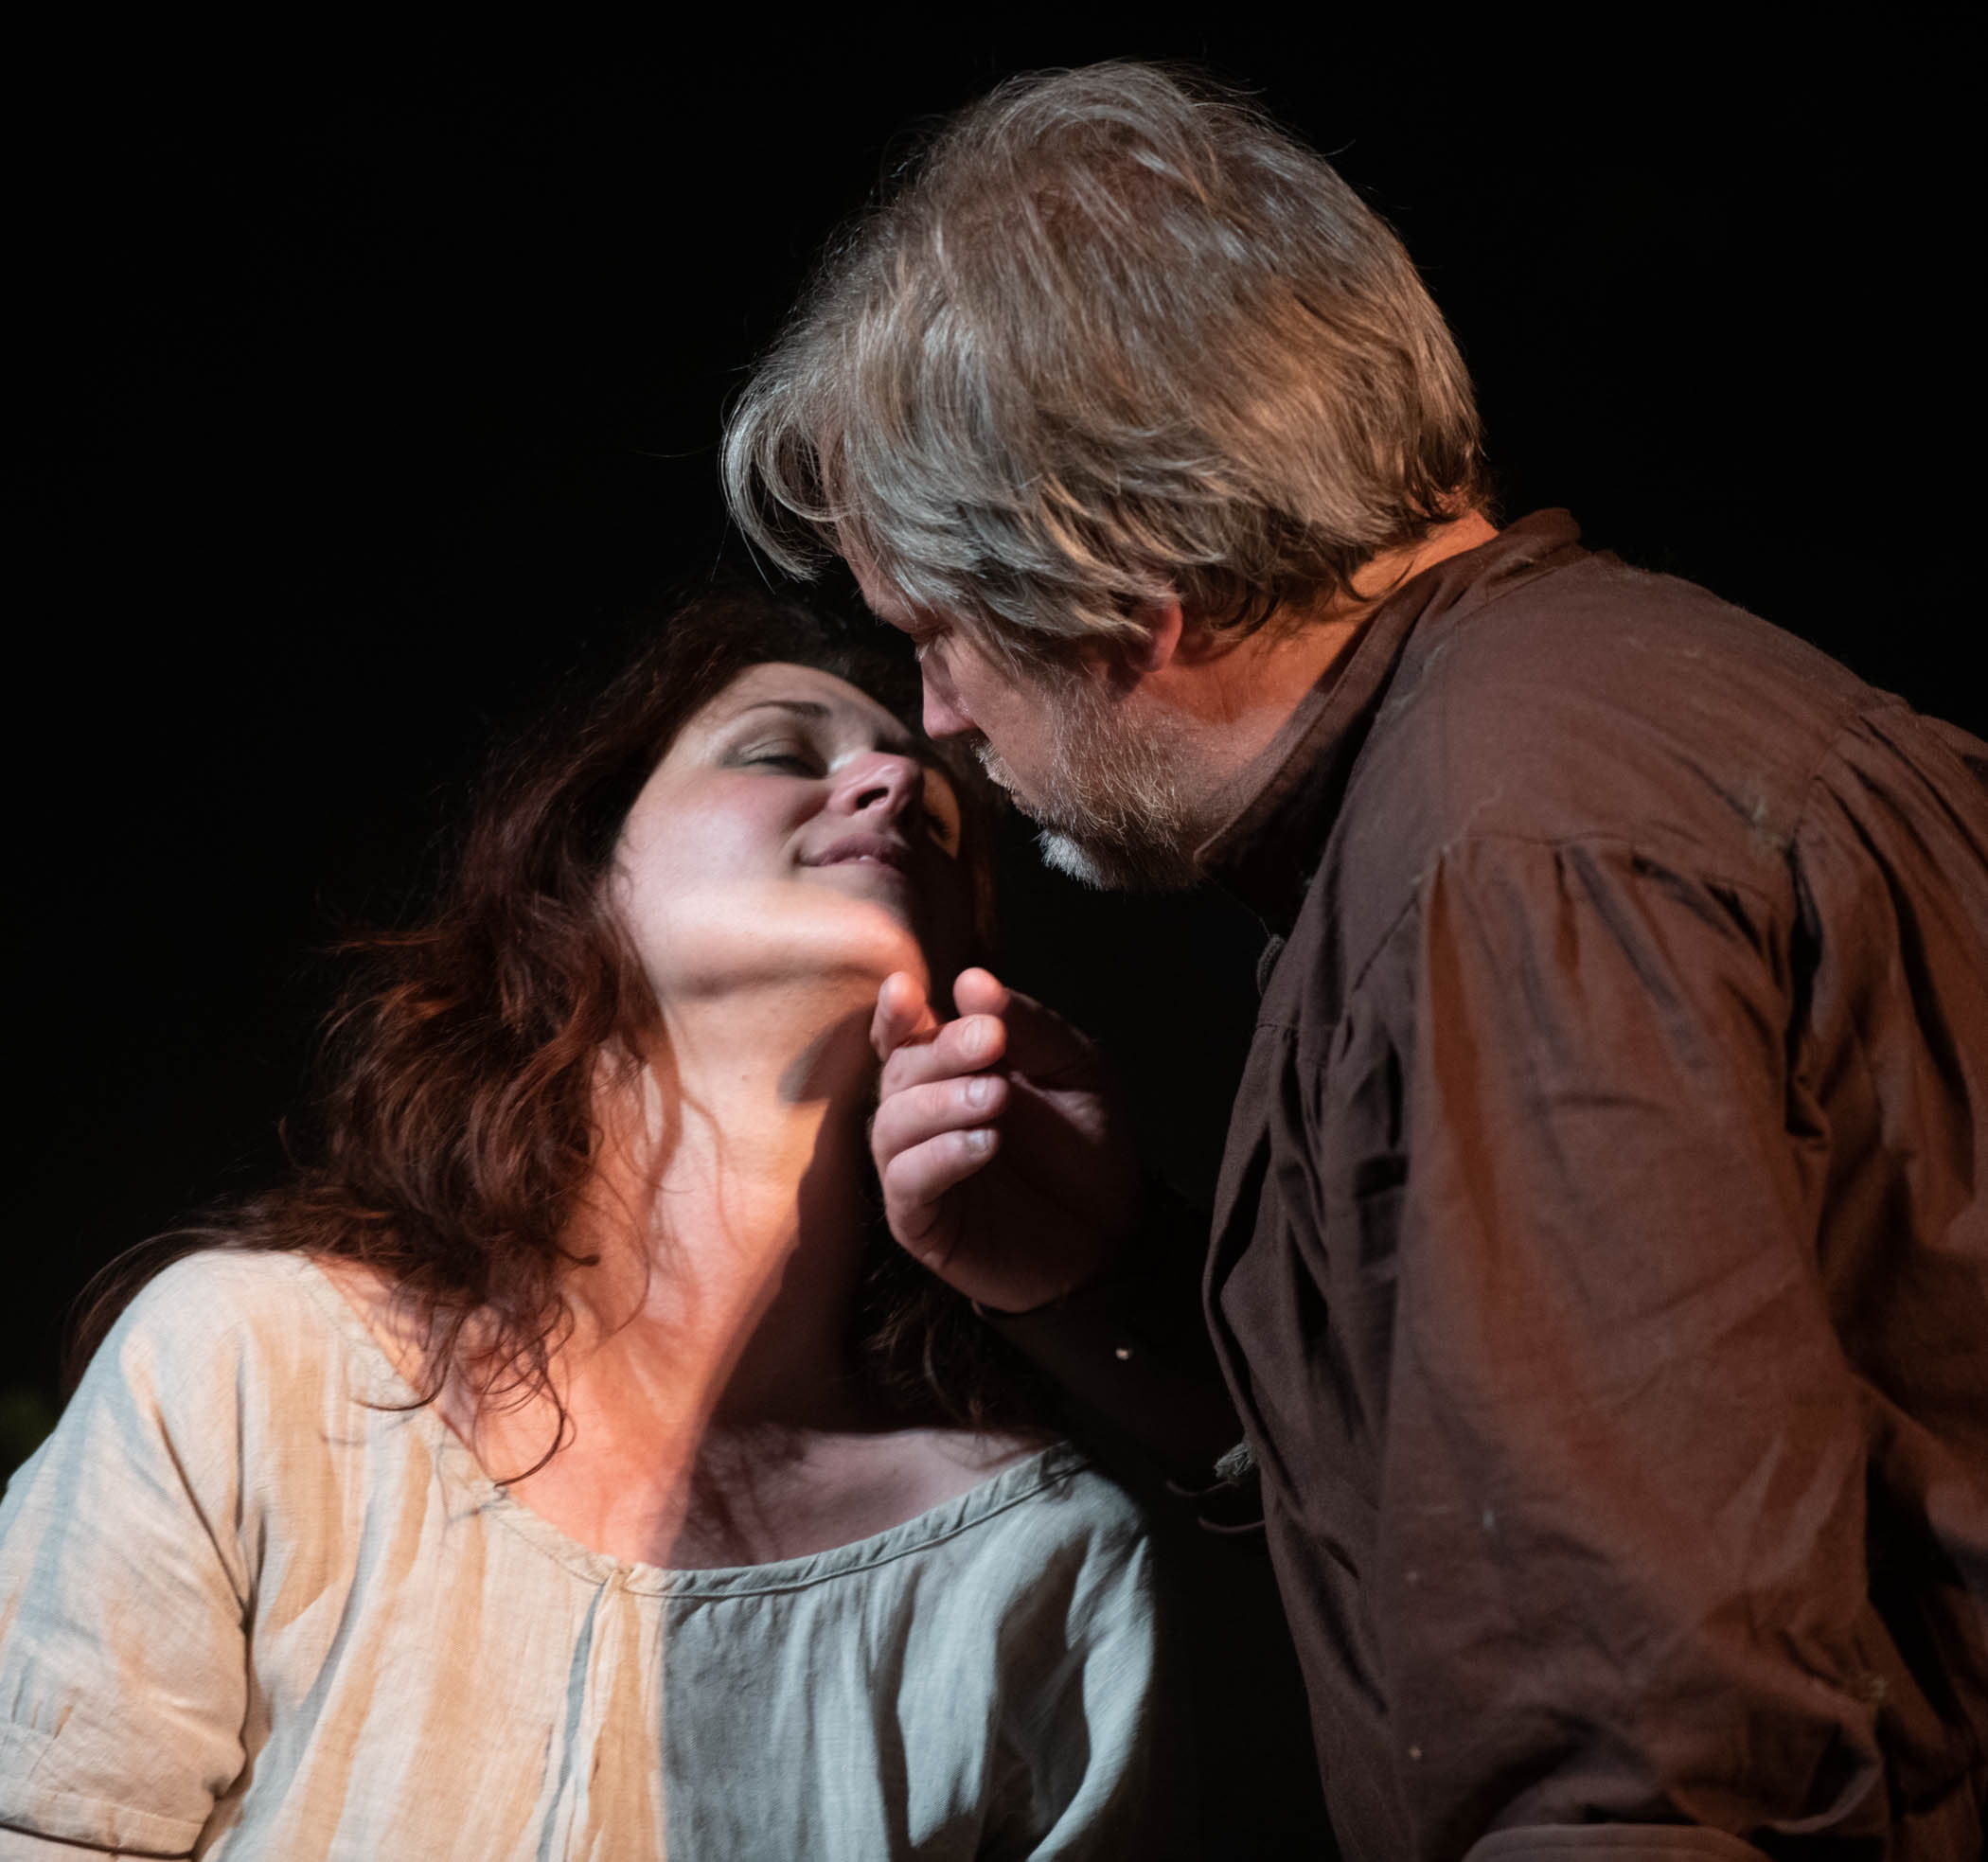 TUNDI's remarkable Tristan und Isolde at the Latchis Theatre in Brattleboro, Vermont